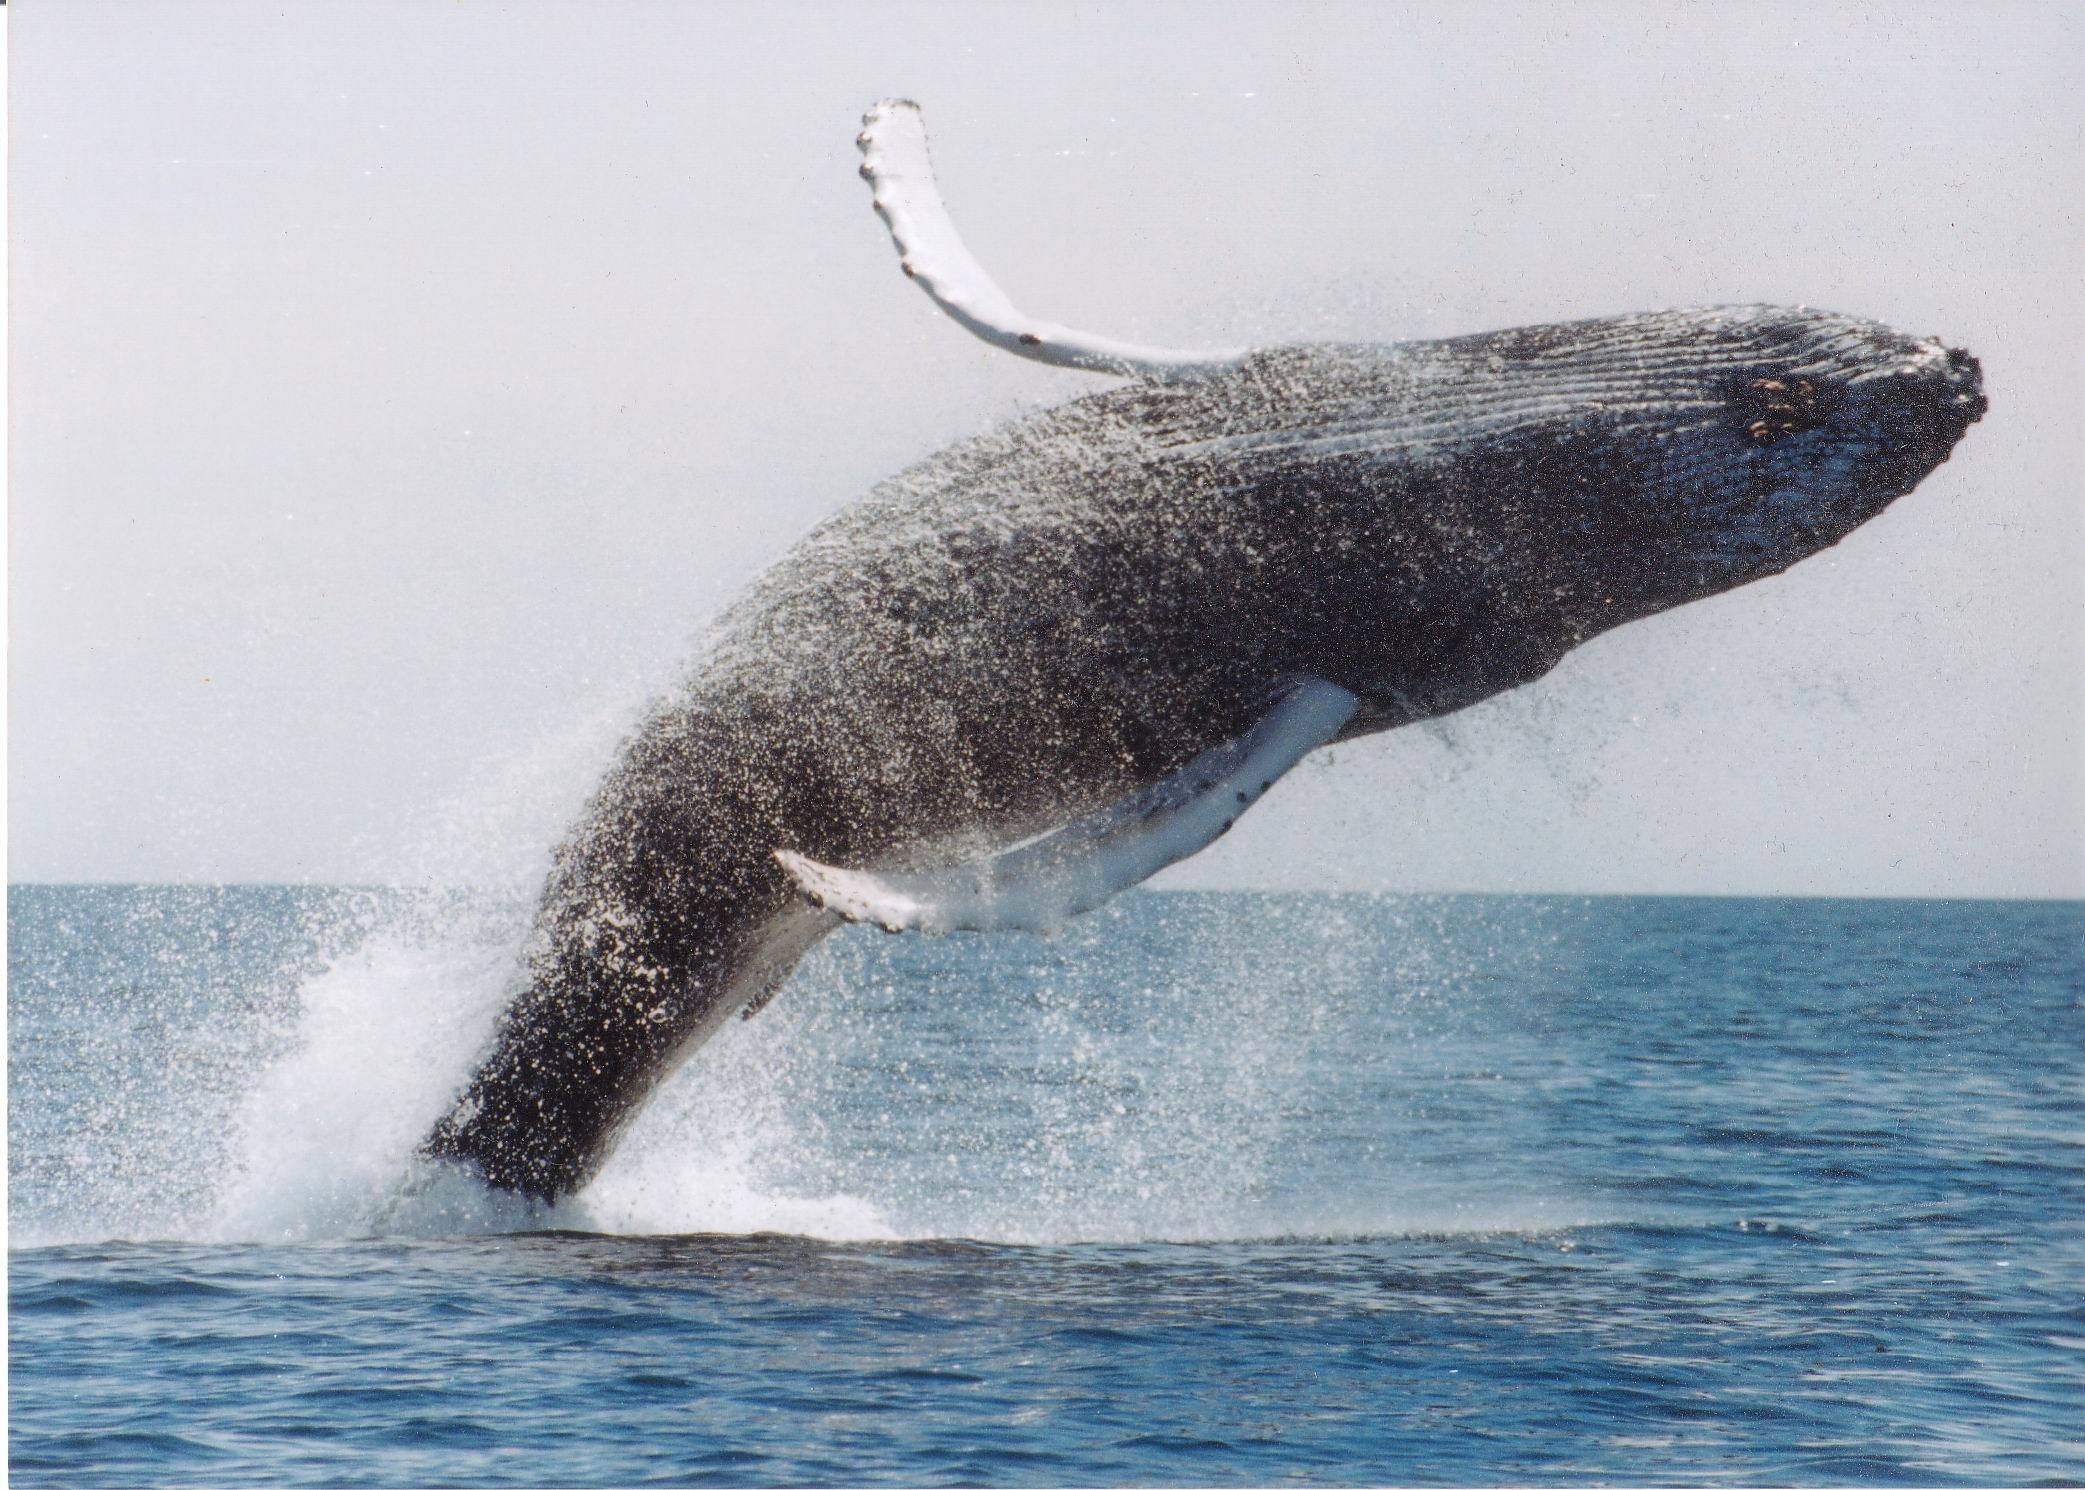 ocean jumping Whales HD Wallpaper